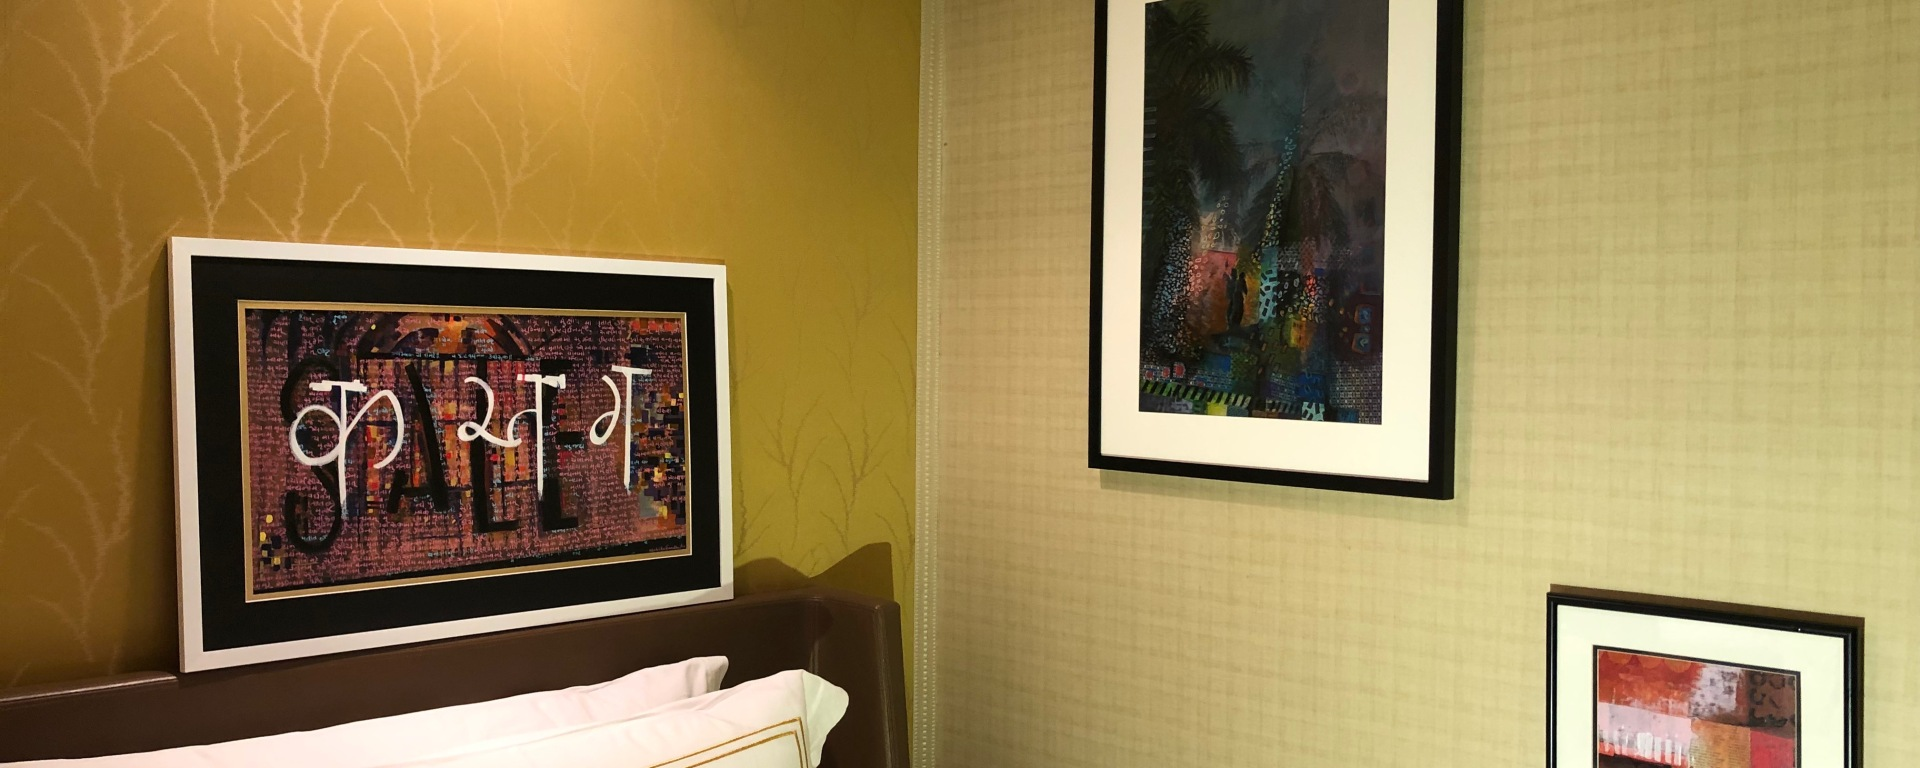 akshita gandhi, india, contemporary art, conrad hotel